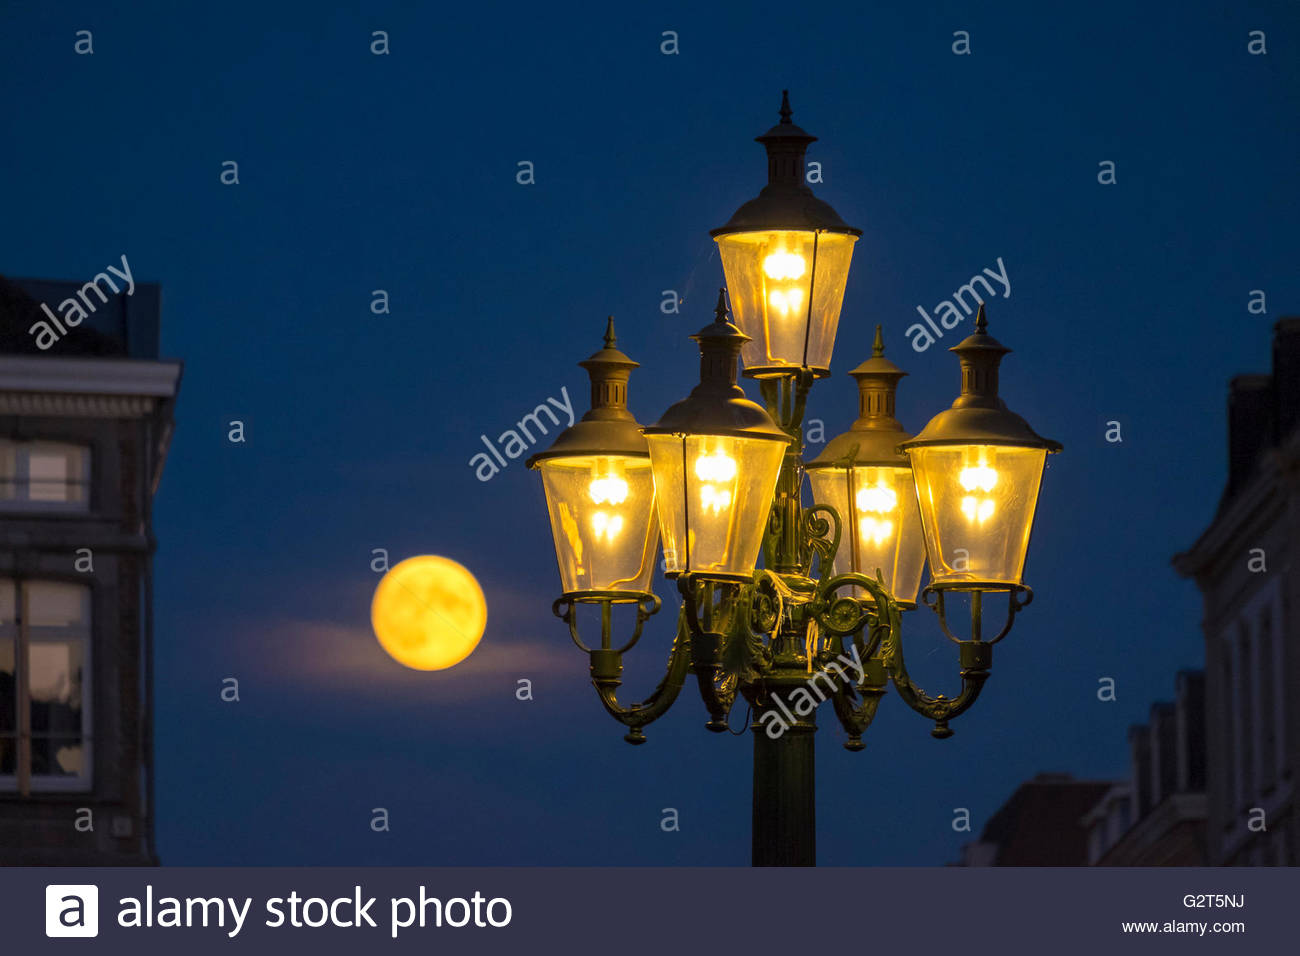 Full moon rising behind street lamps, Maastricht, Limburg, Netherlands - Stock Image